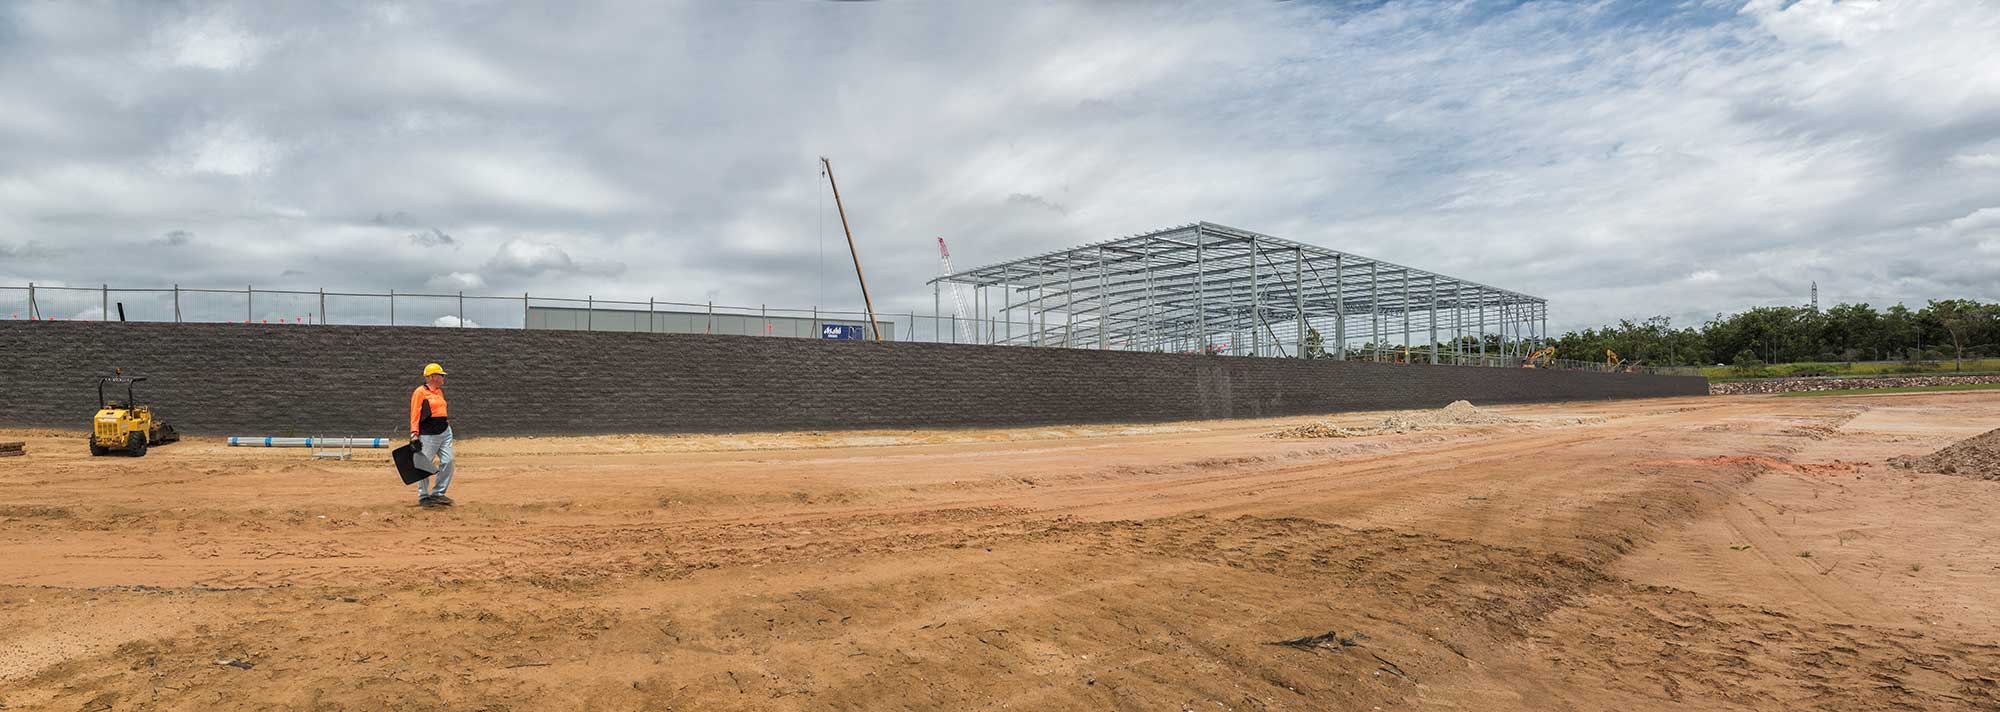 Ground photography for Concrib Segmental Wall Construction Heathwood Brisbane